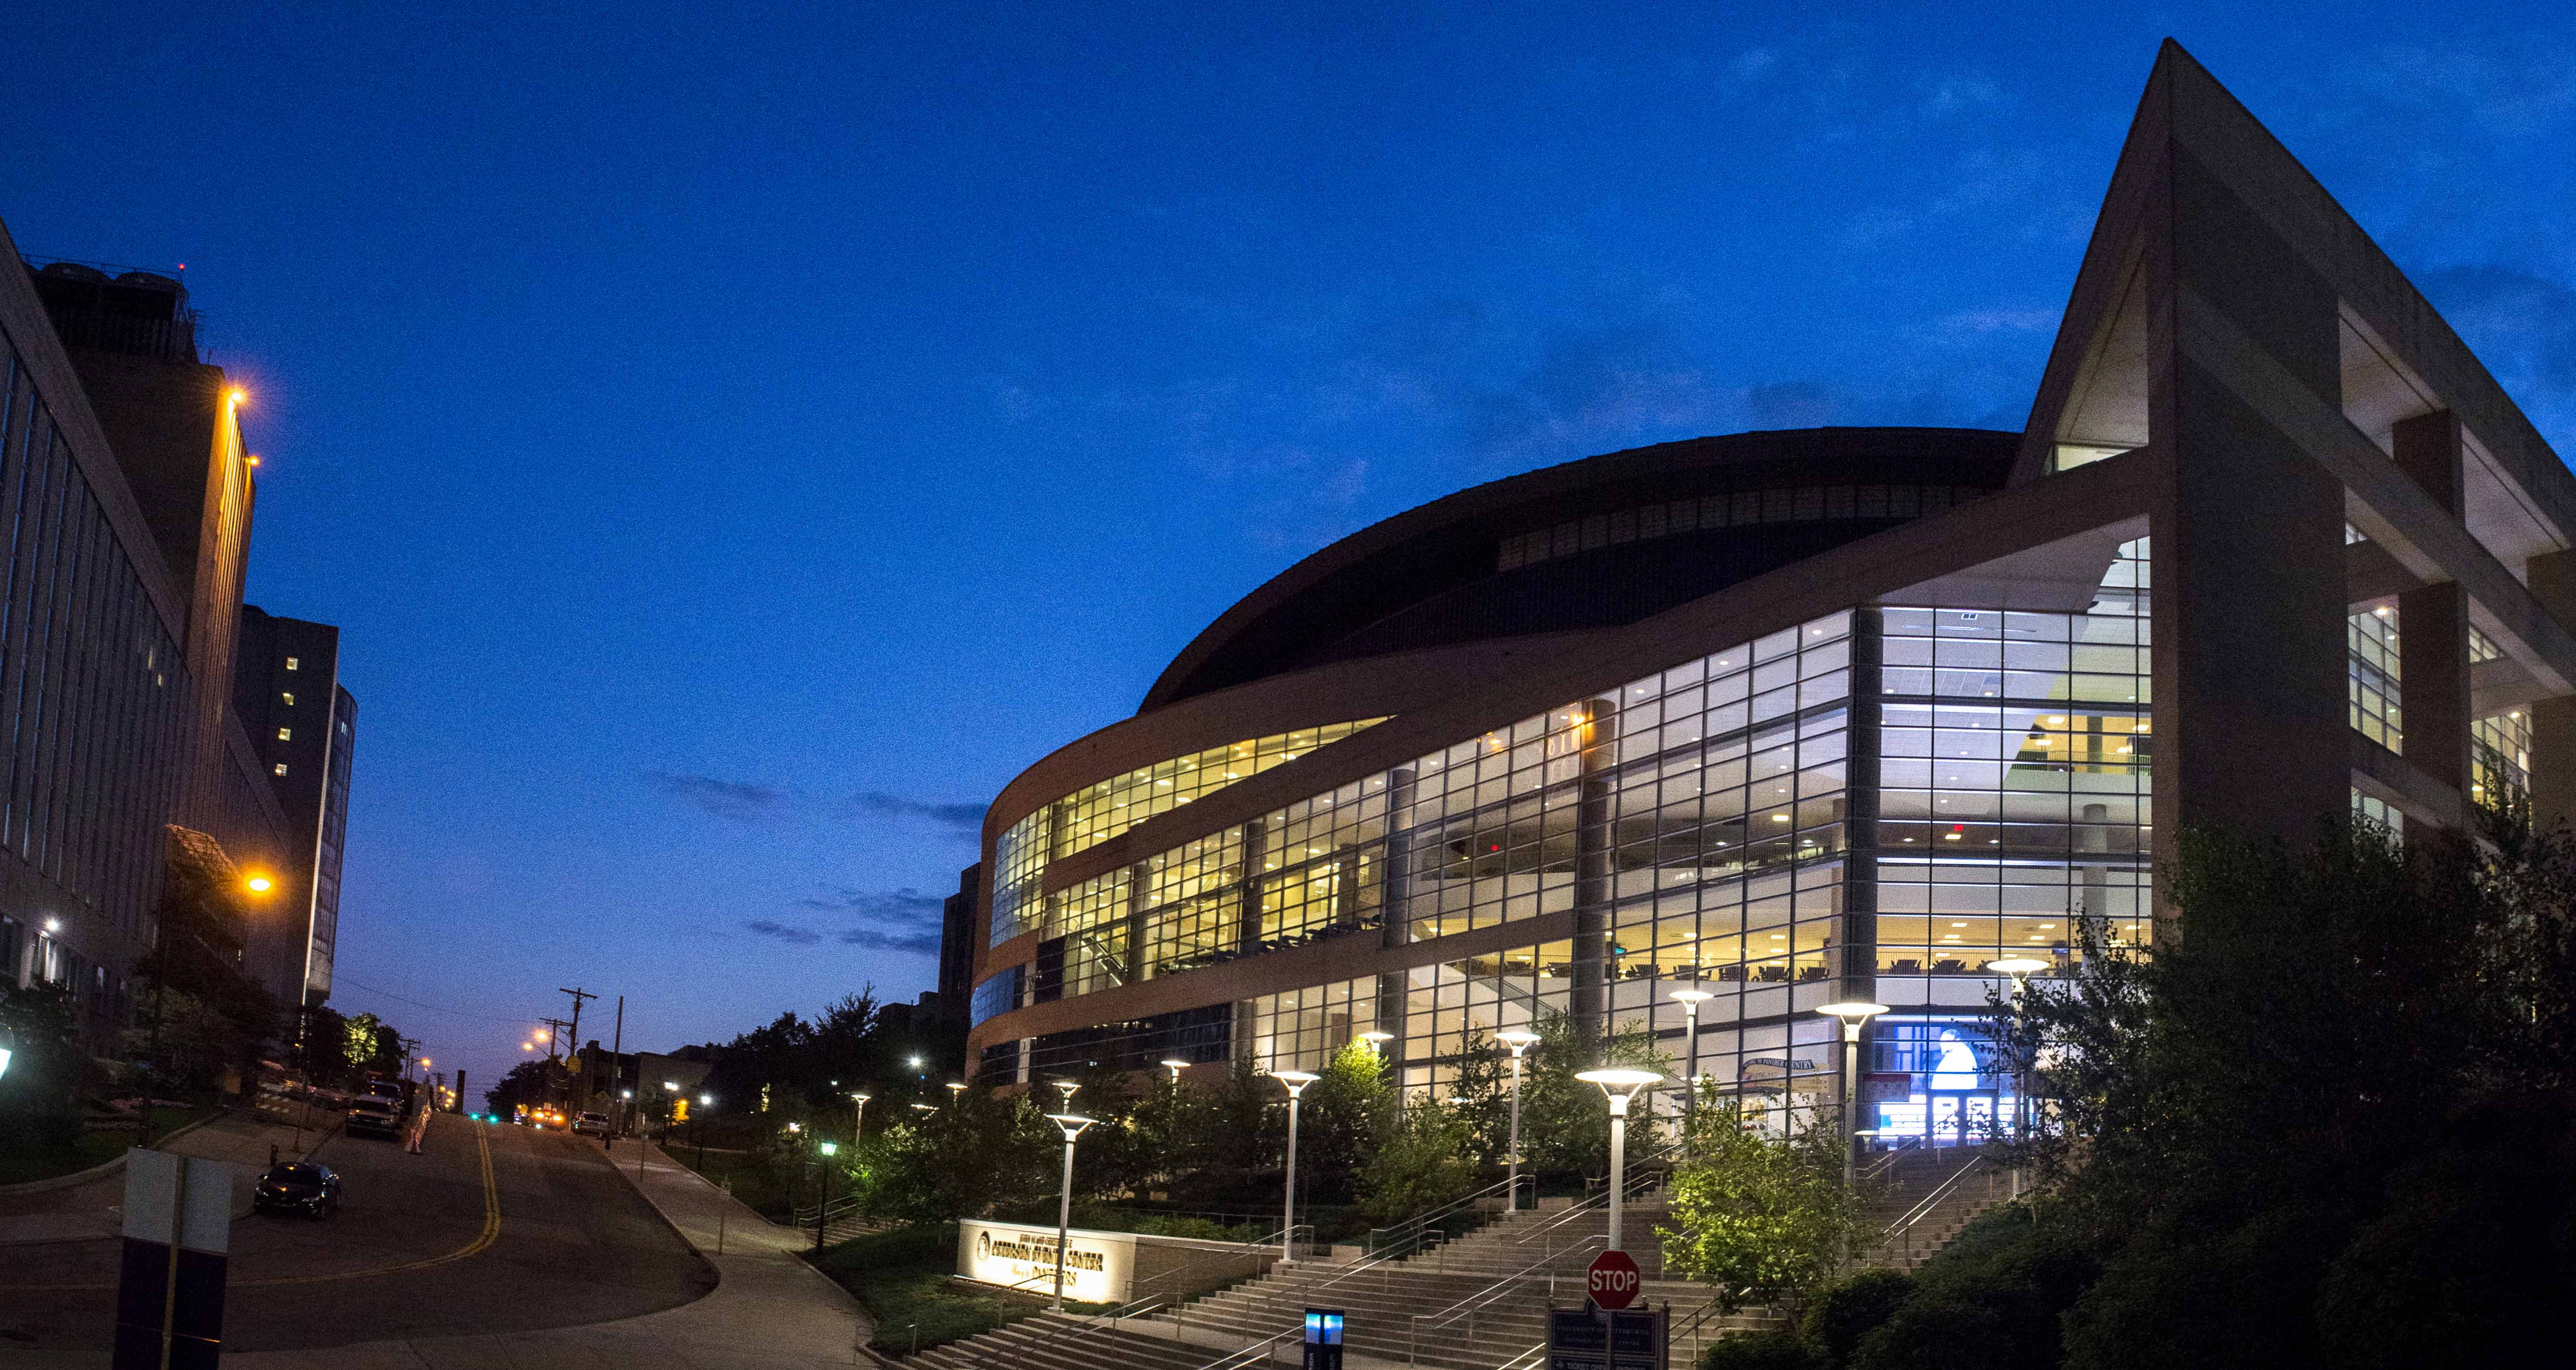 Petersen Events Center at night